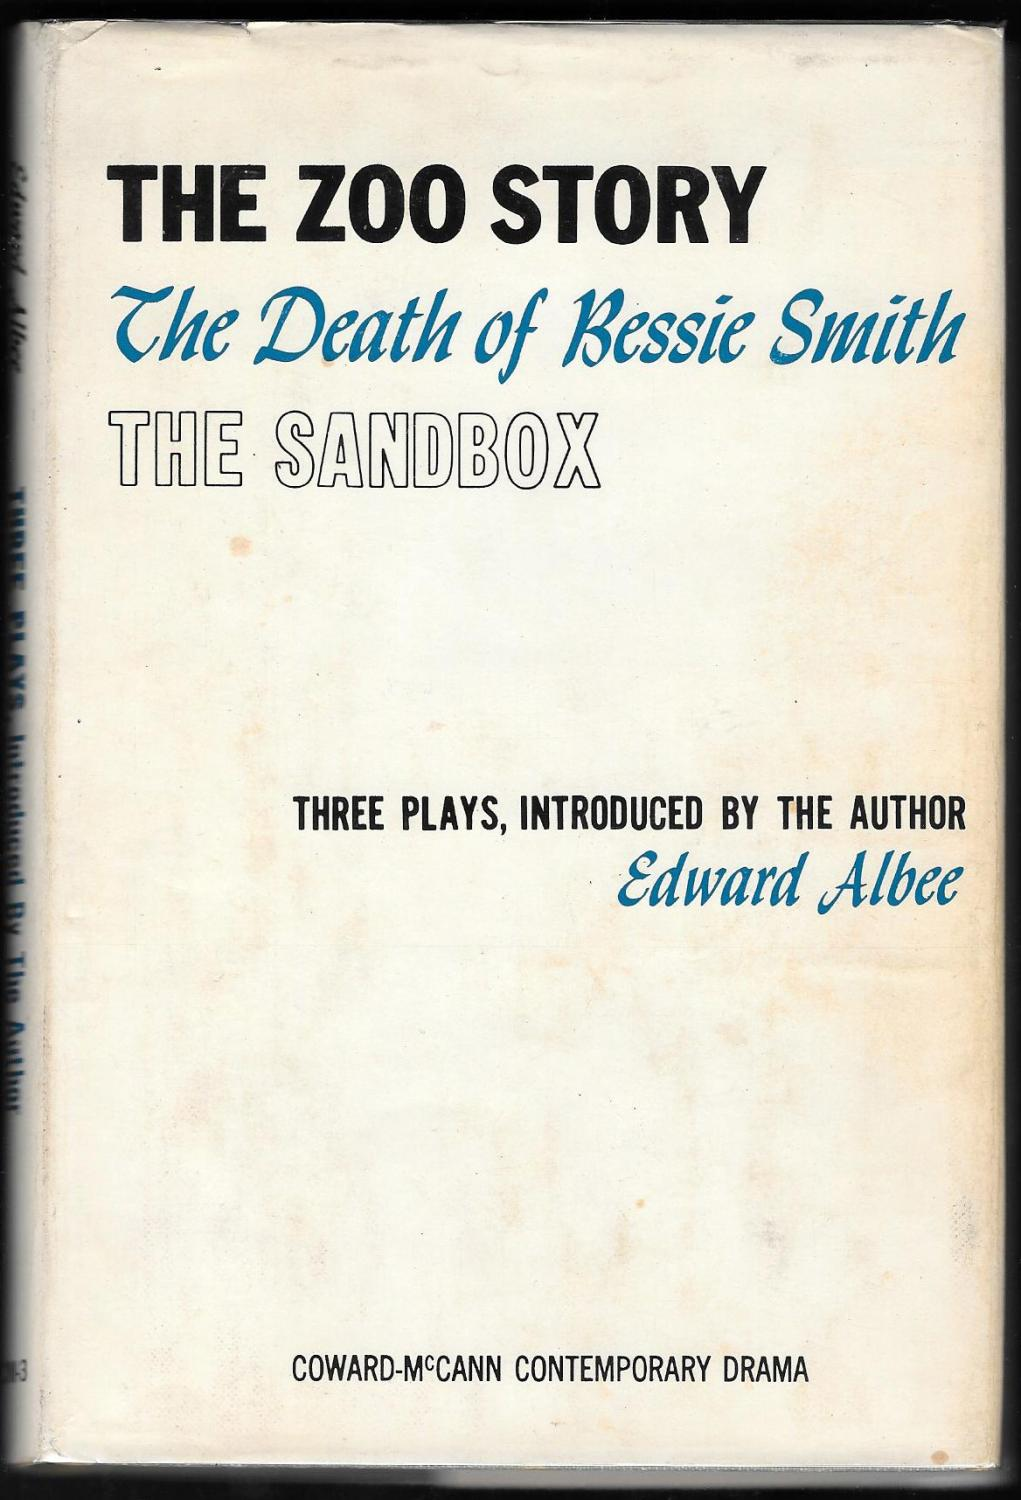 a review of the sandbox by edward albee Edward albee 484 likes 3 talking about this edward albee (1928-2016) received three pulitzer prizes for his plays.